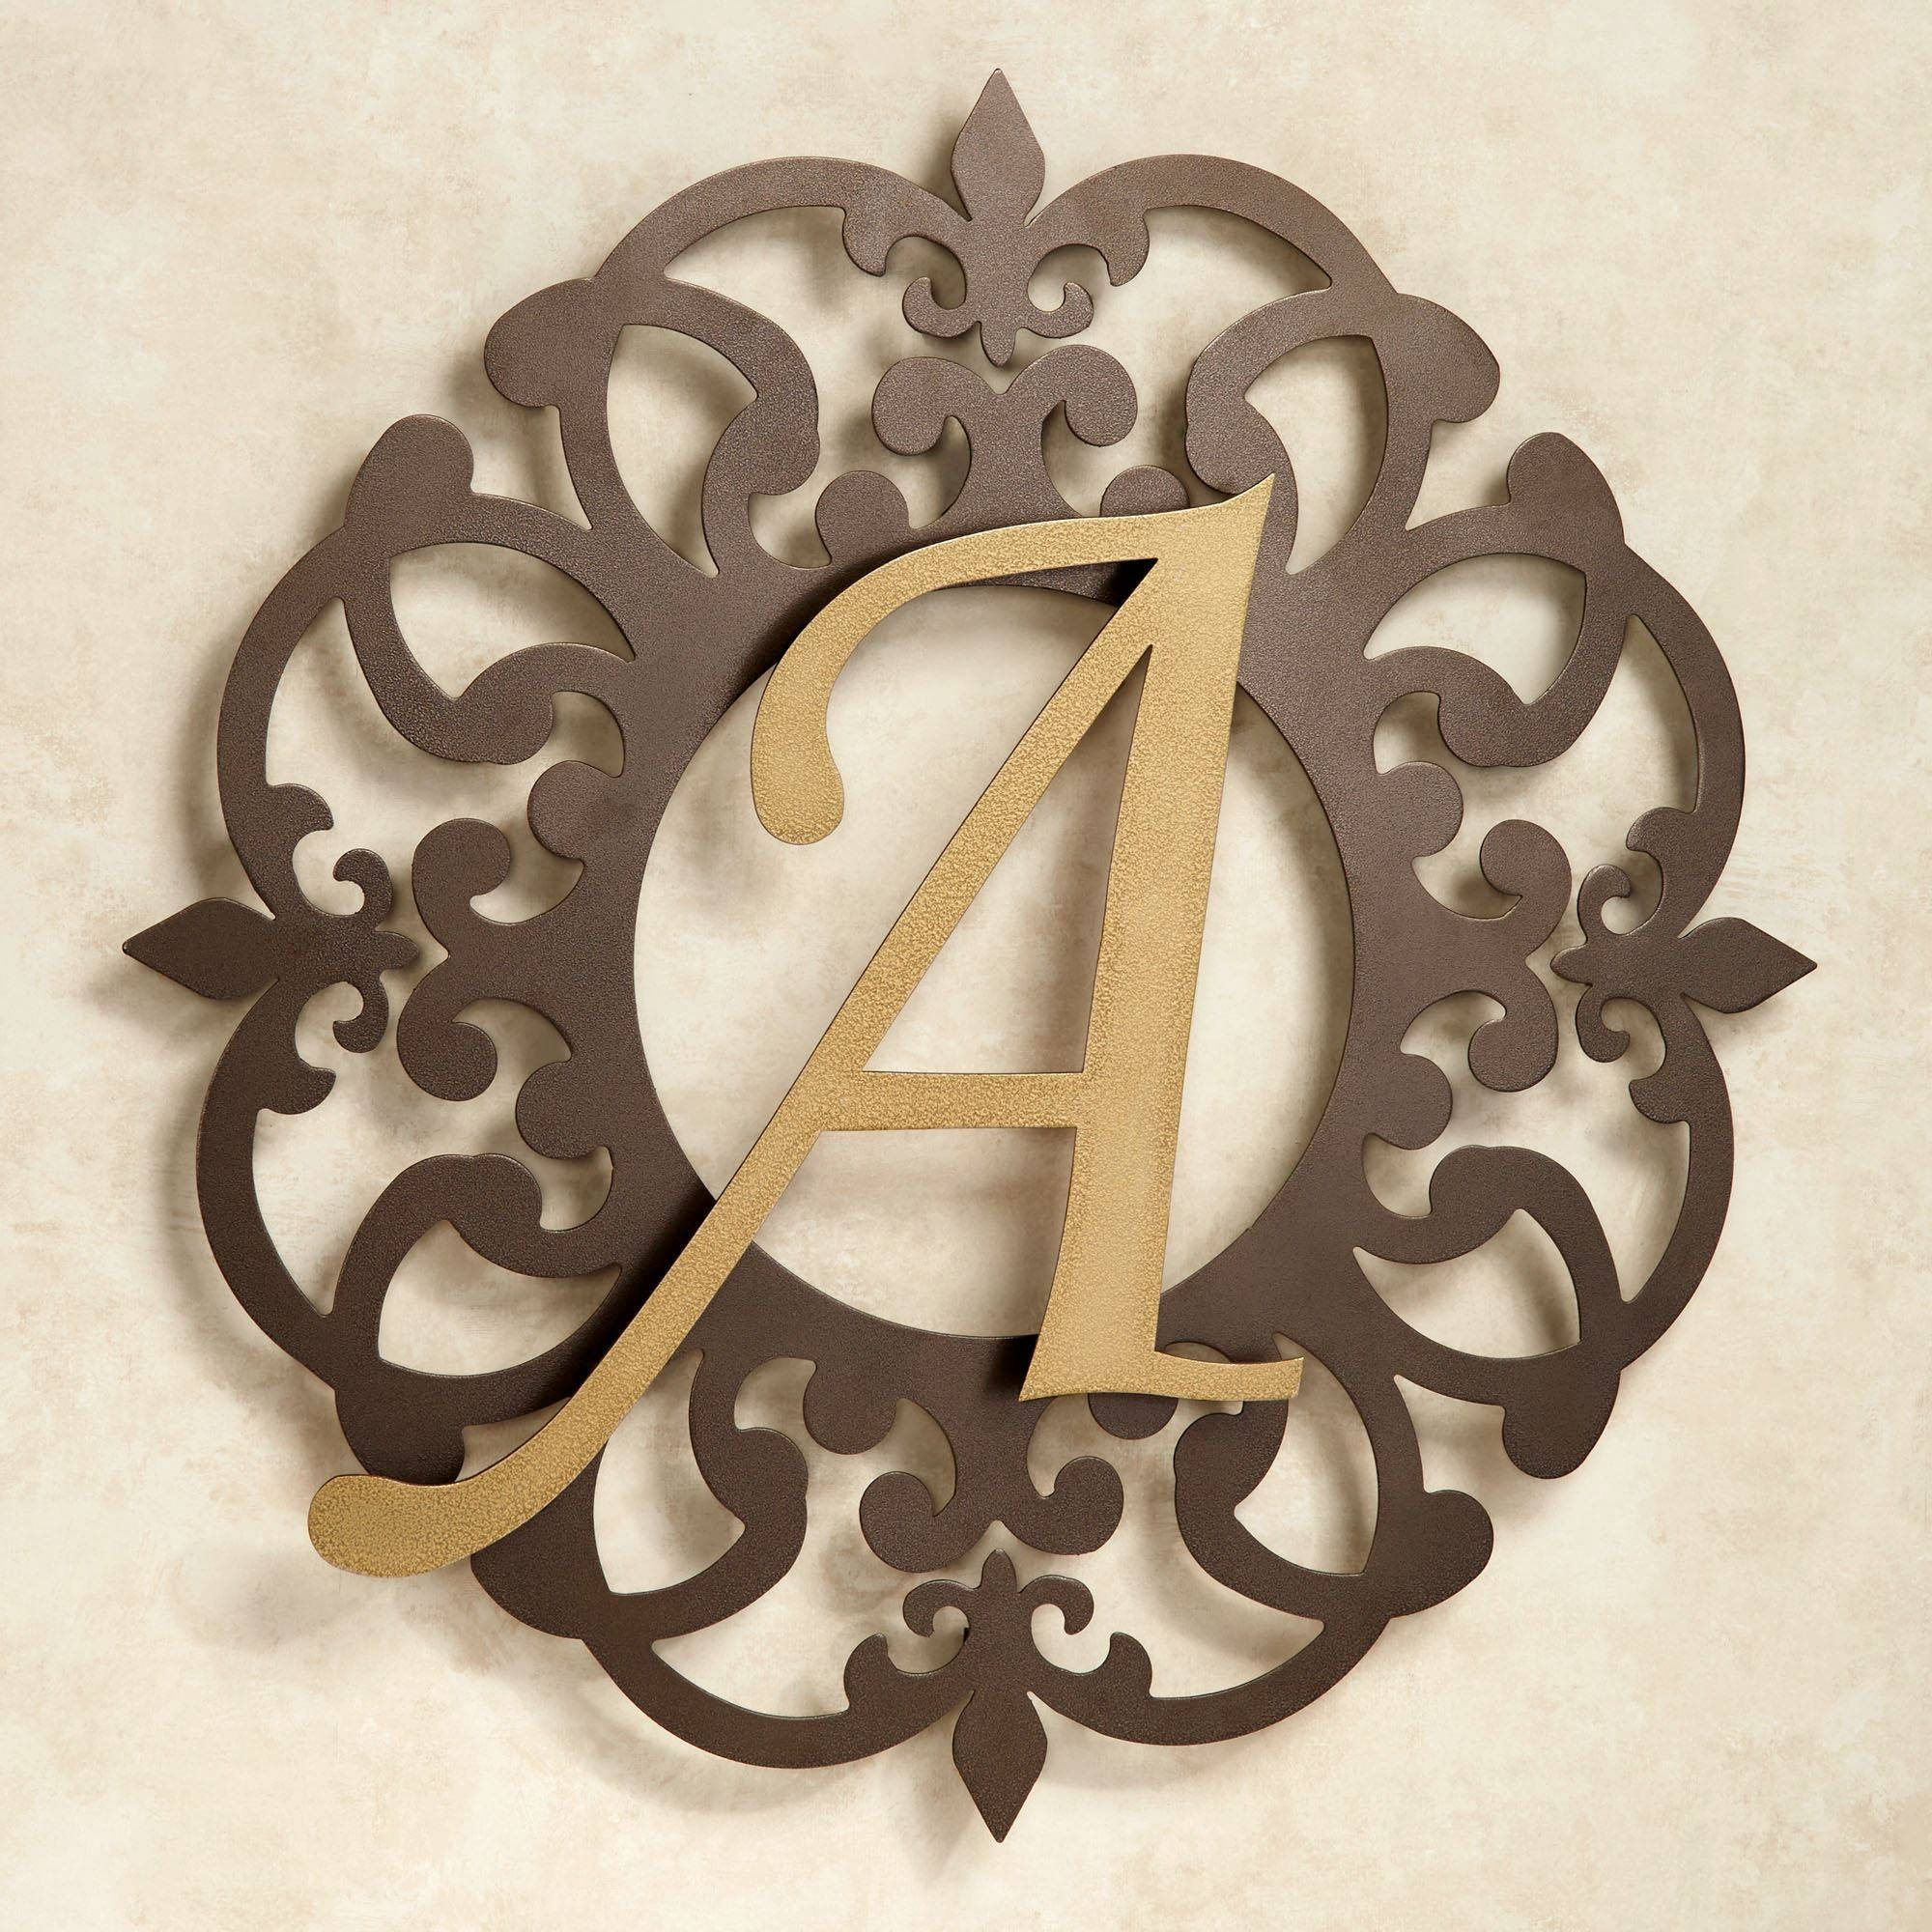 Heritage Monogram Metal Wall Art Signjasonw Studios In 2017 Monogram Metal Wall Art (View 12 of 20)